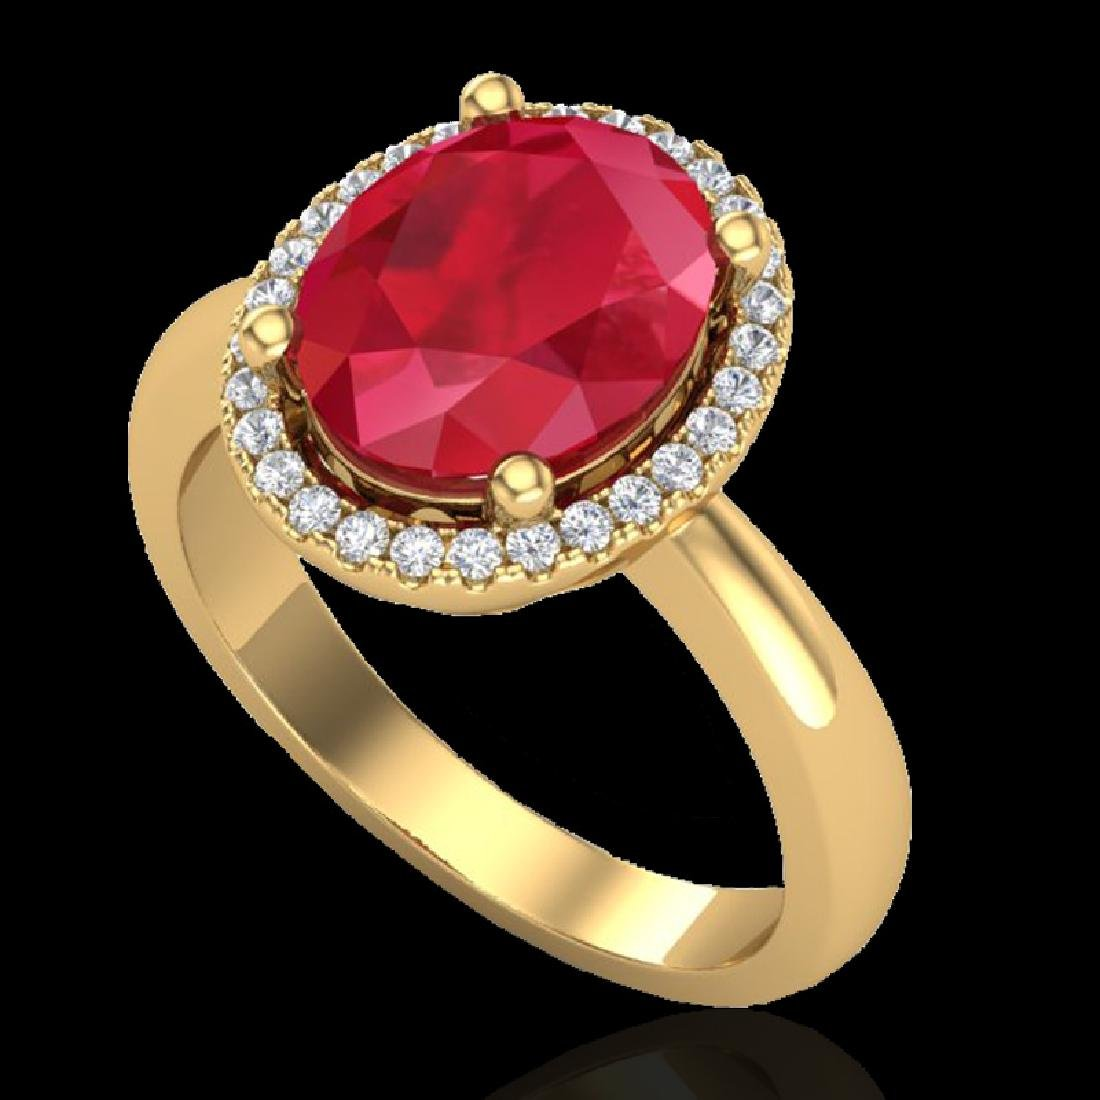 3 CTW Ruby And Micro Pave VS/SI Diamond Ring Halo 18K - 2